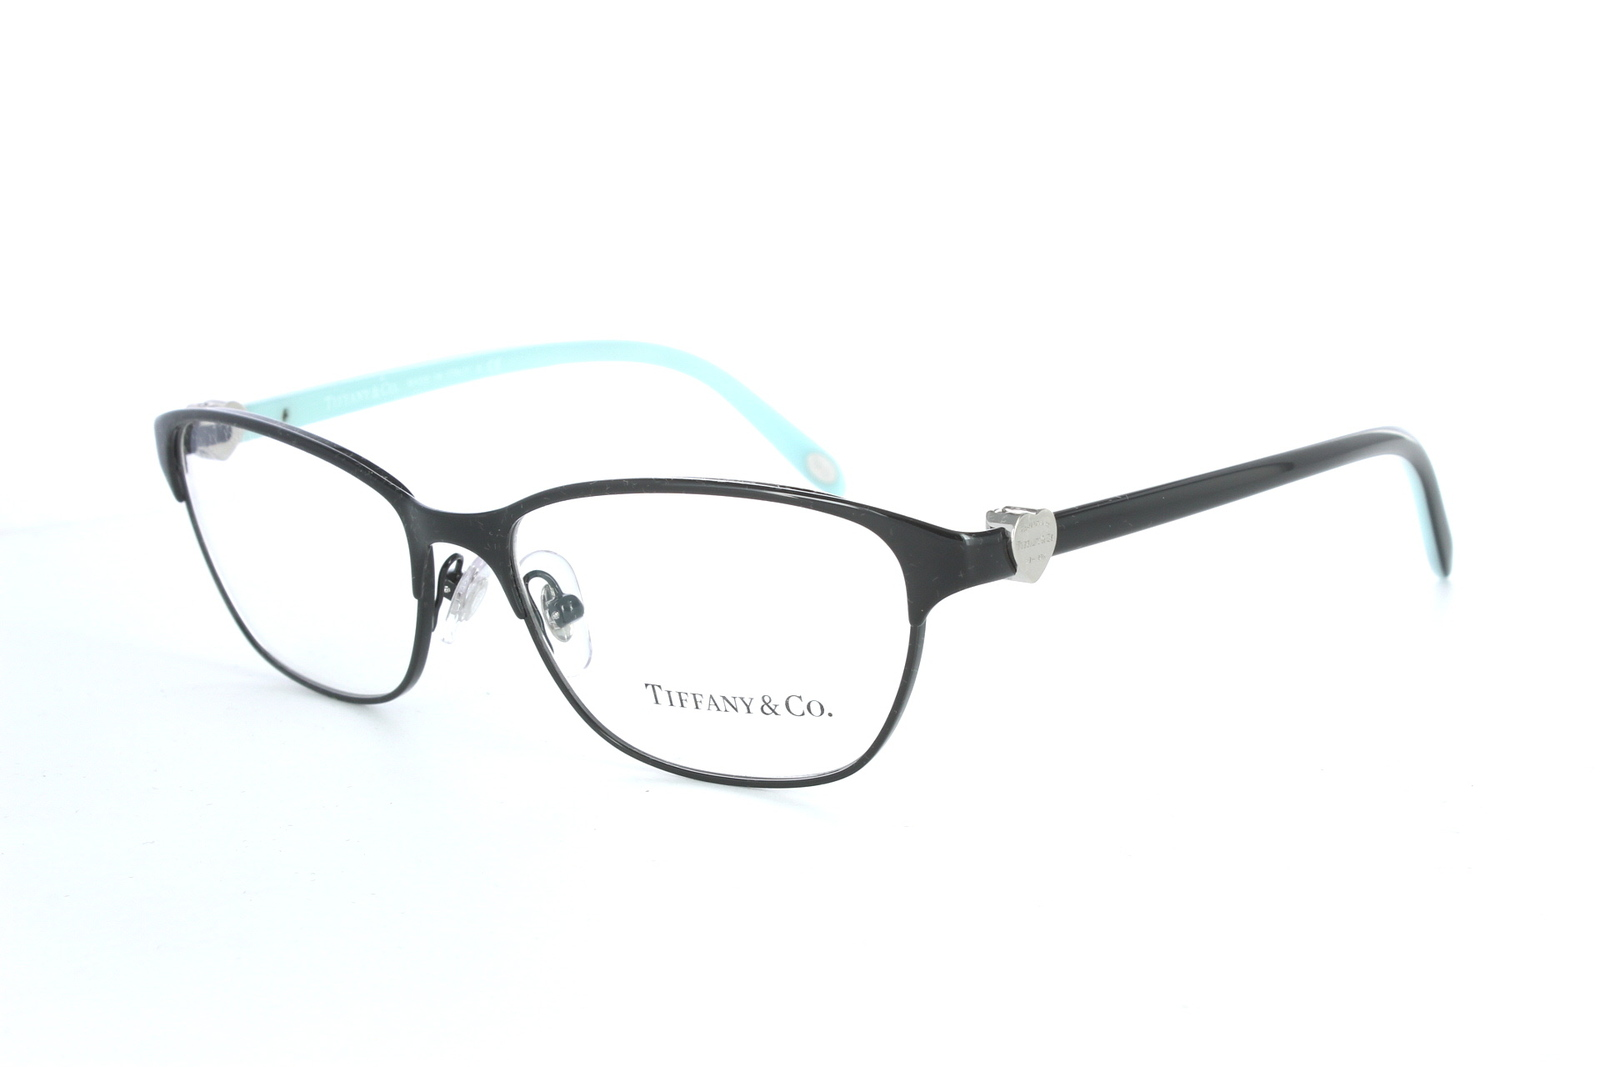 New authentic tiffany amp co tf1072 6007 51mm eyeglass frame eyeglass